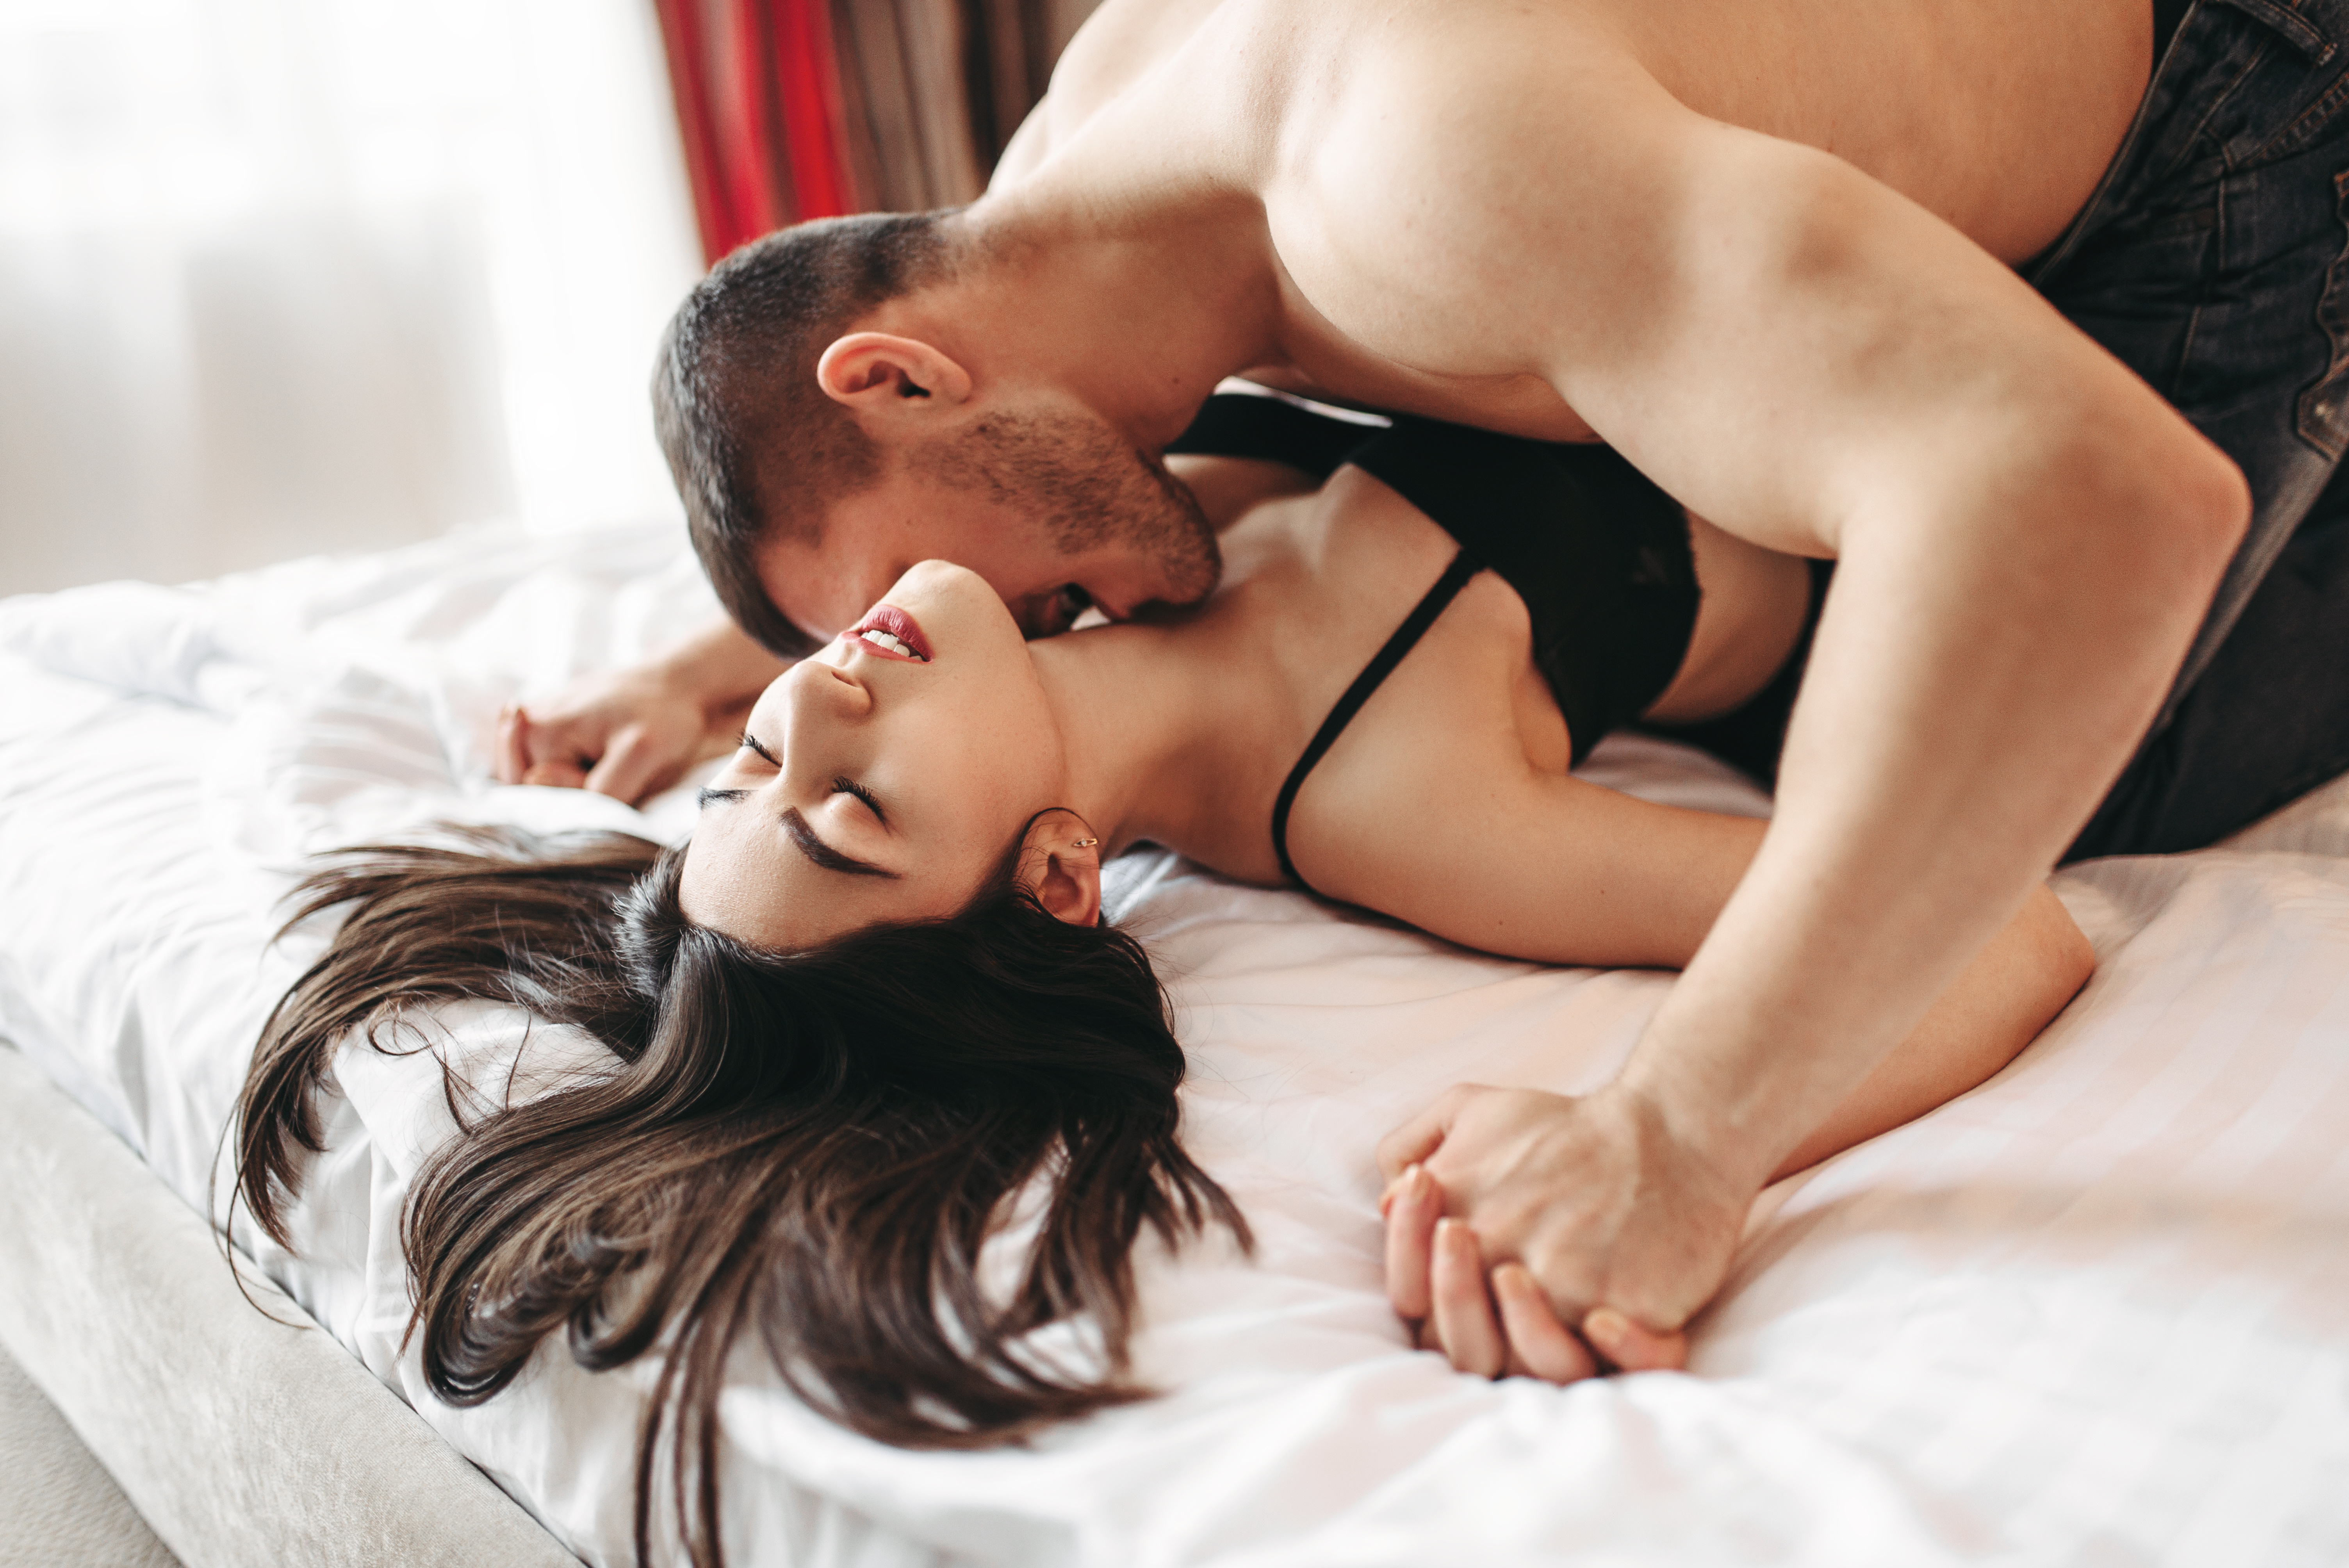 A couple on a bed together half naked and the man is kissing the woman necking she is looking at him with passion